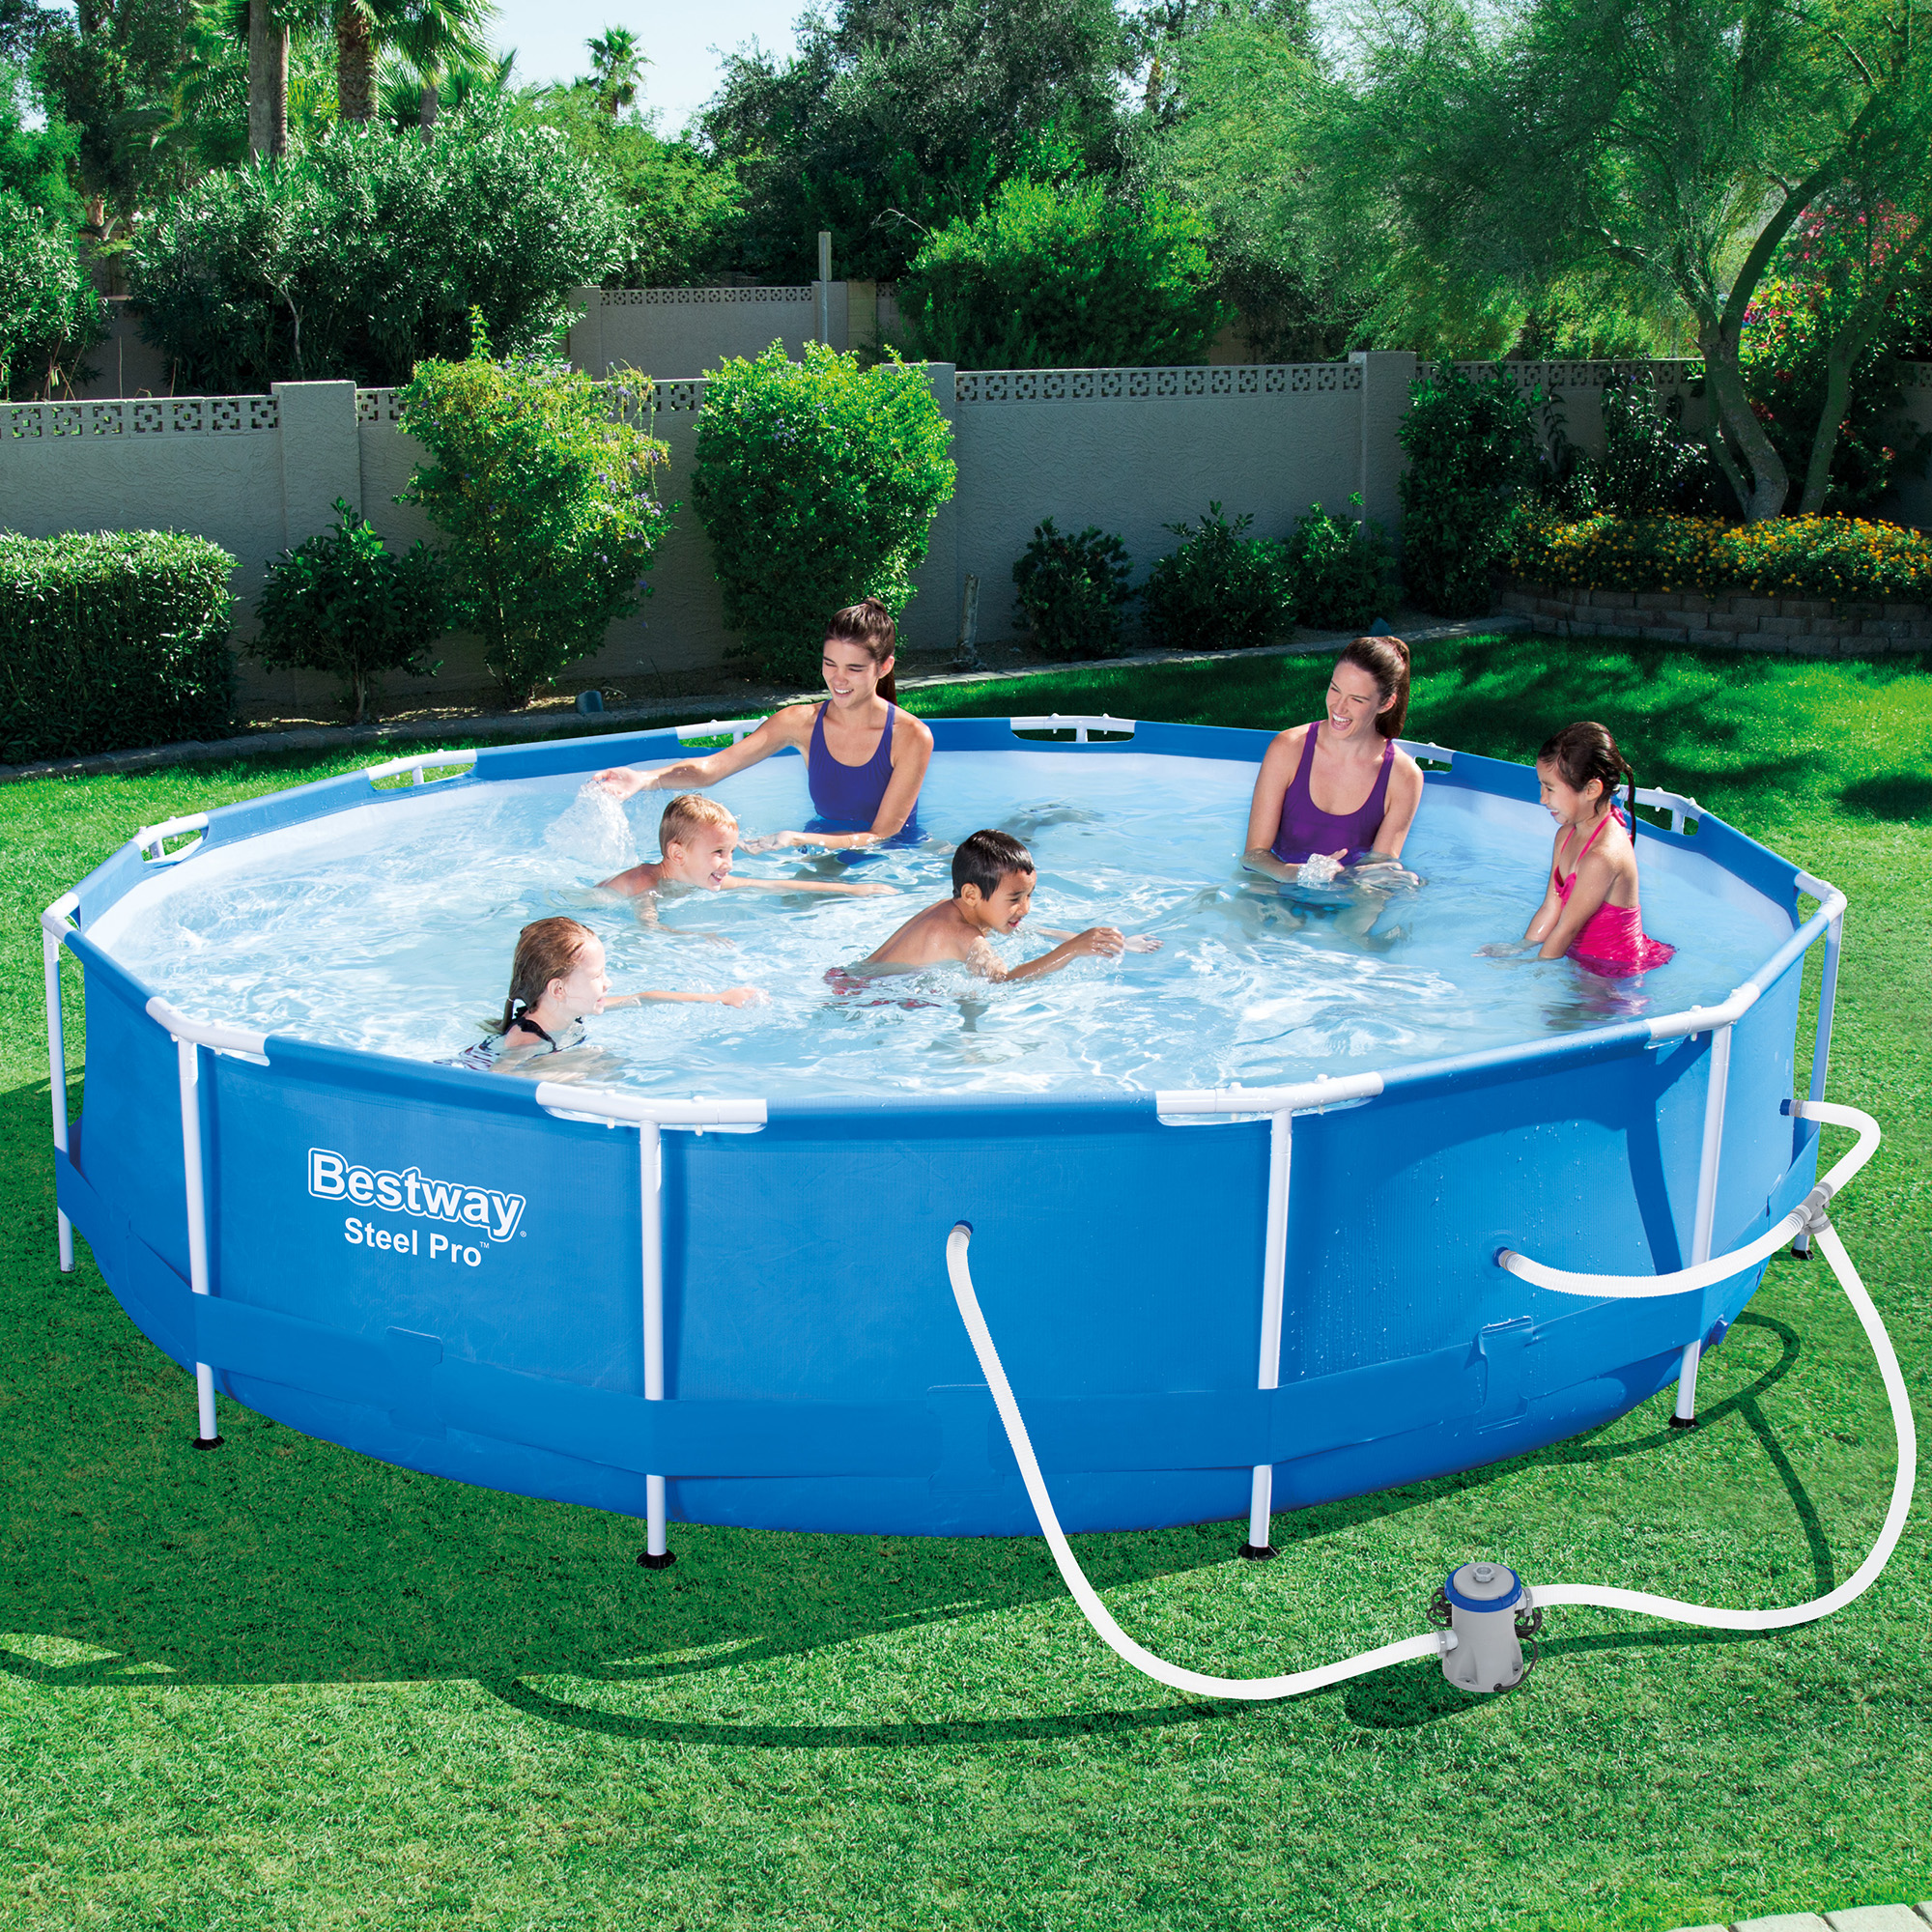 Bestway steel pro 12 39 x 30 frame above ground pool set for Billige pool sets